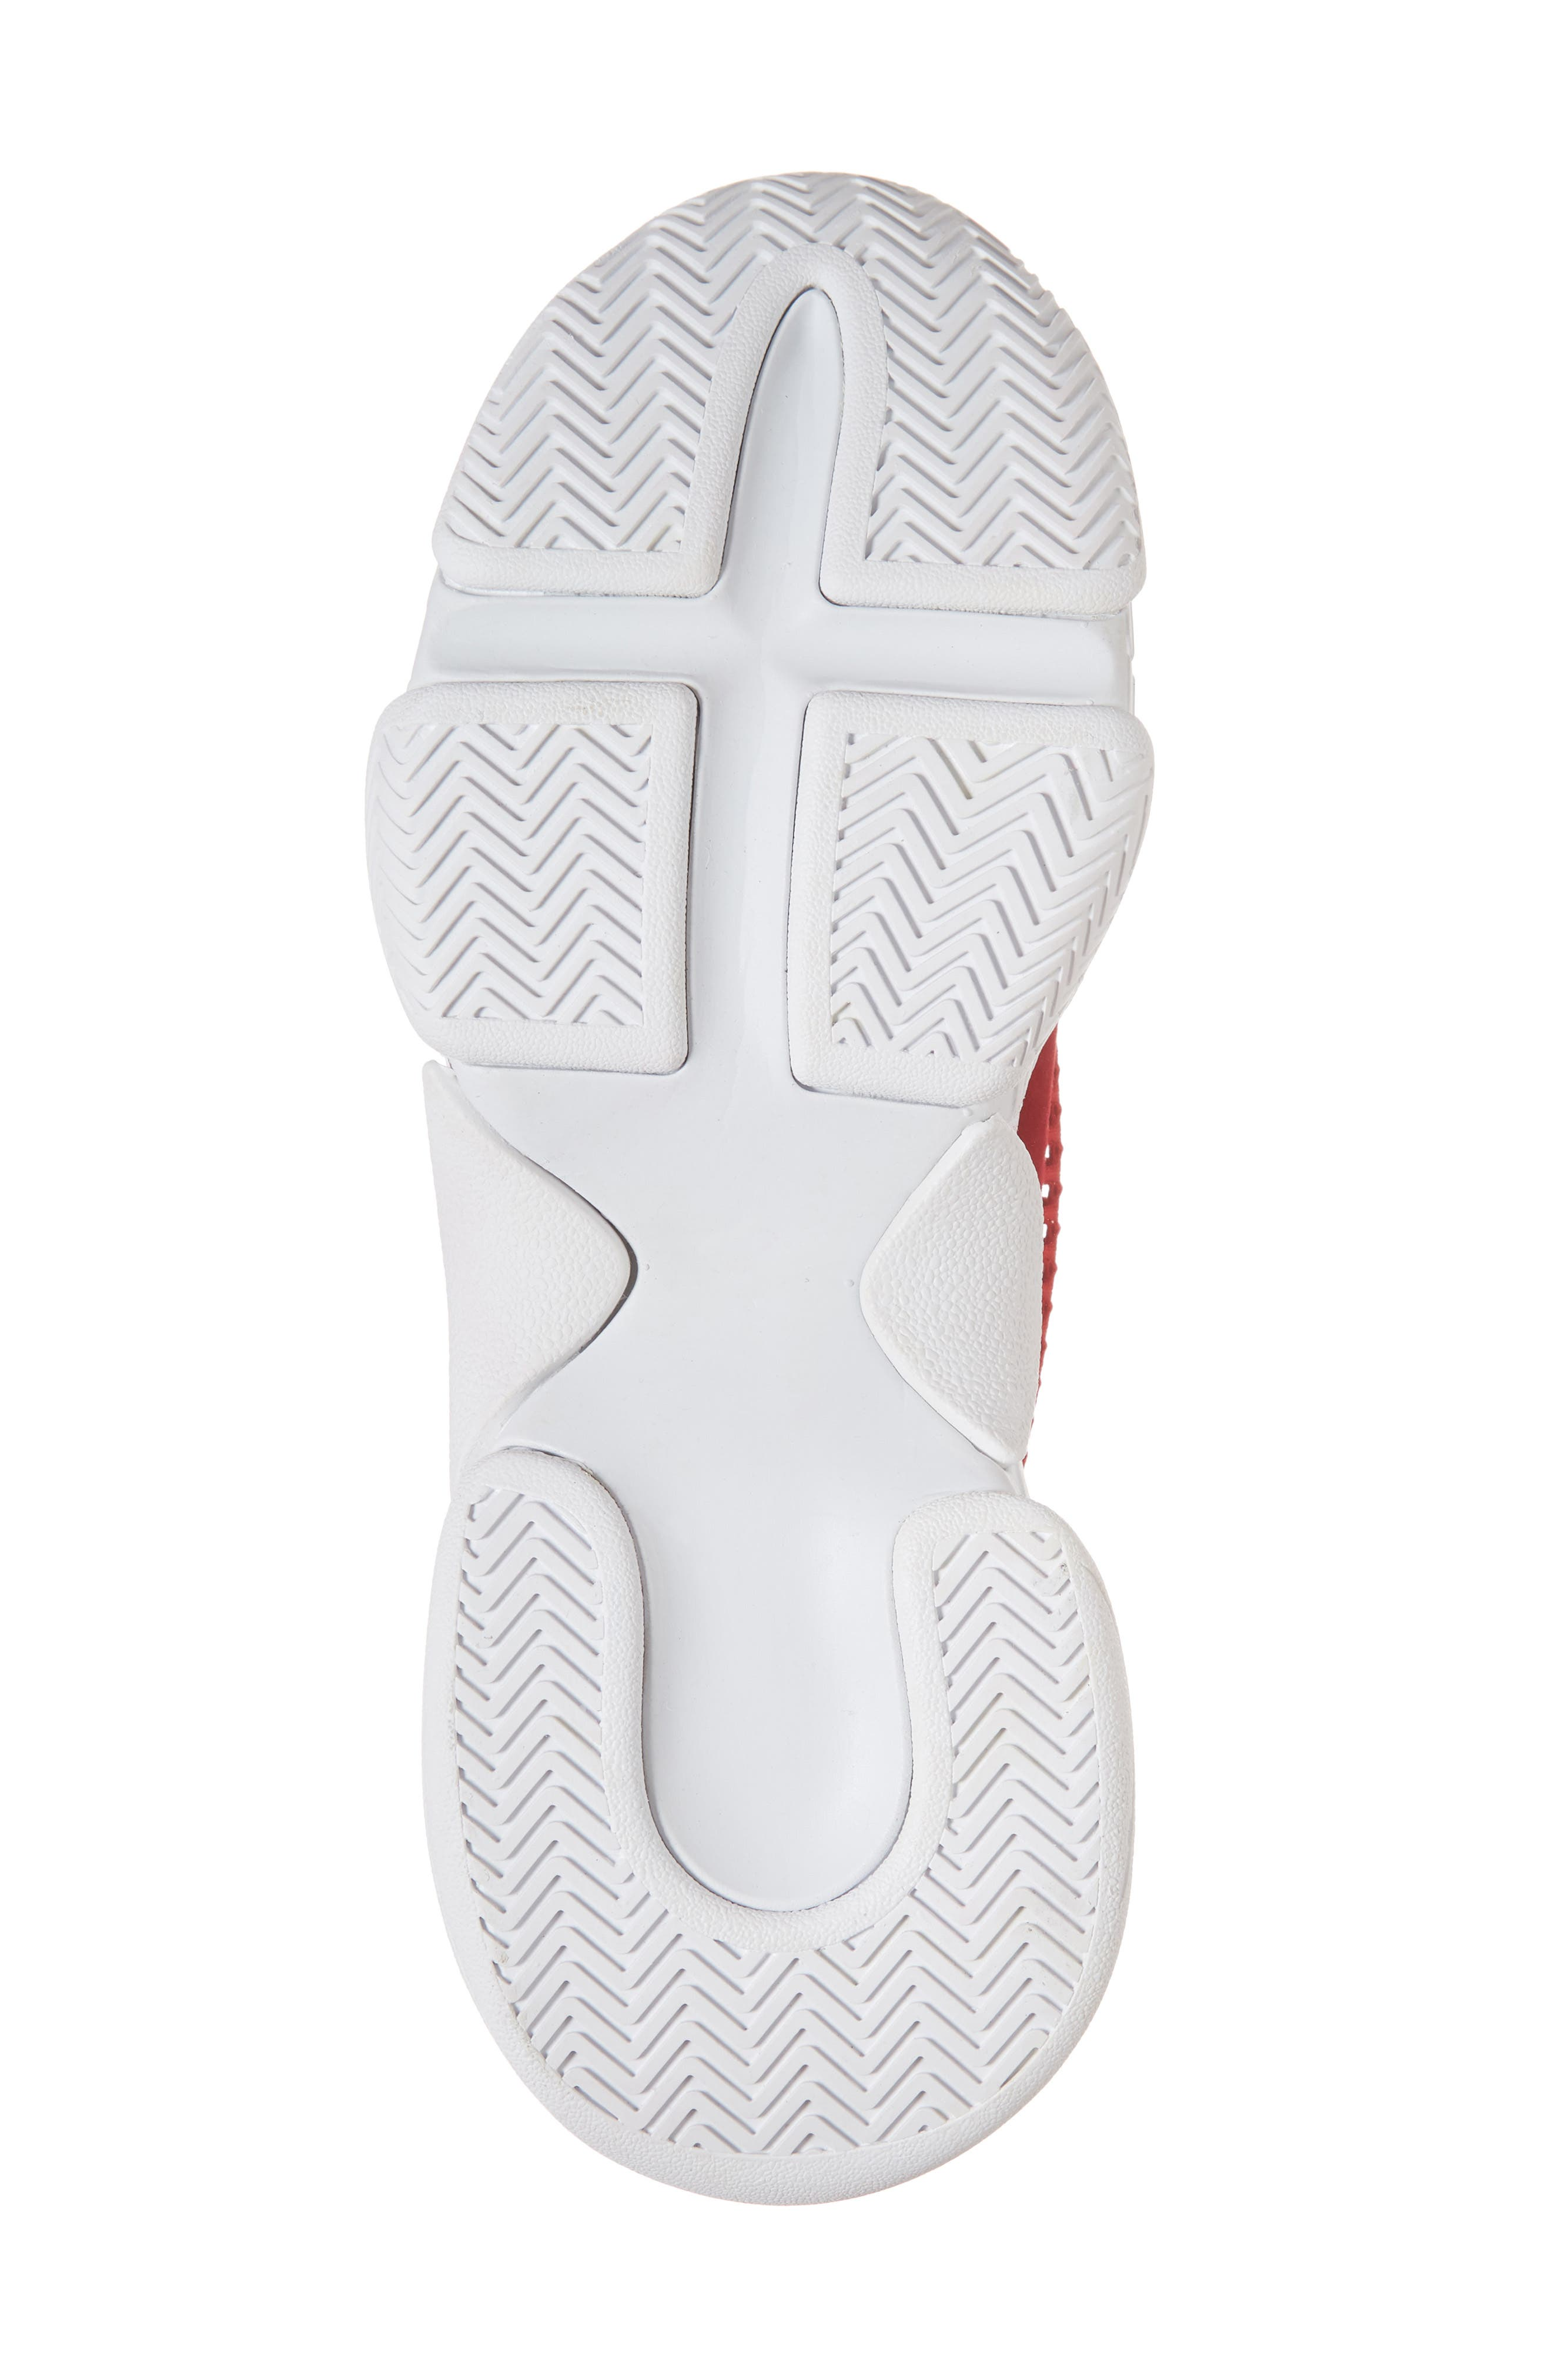 Hotspot Lace-Up Sneaker,                             Alternate thumbnail 6, color,                             Red